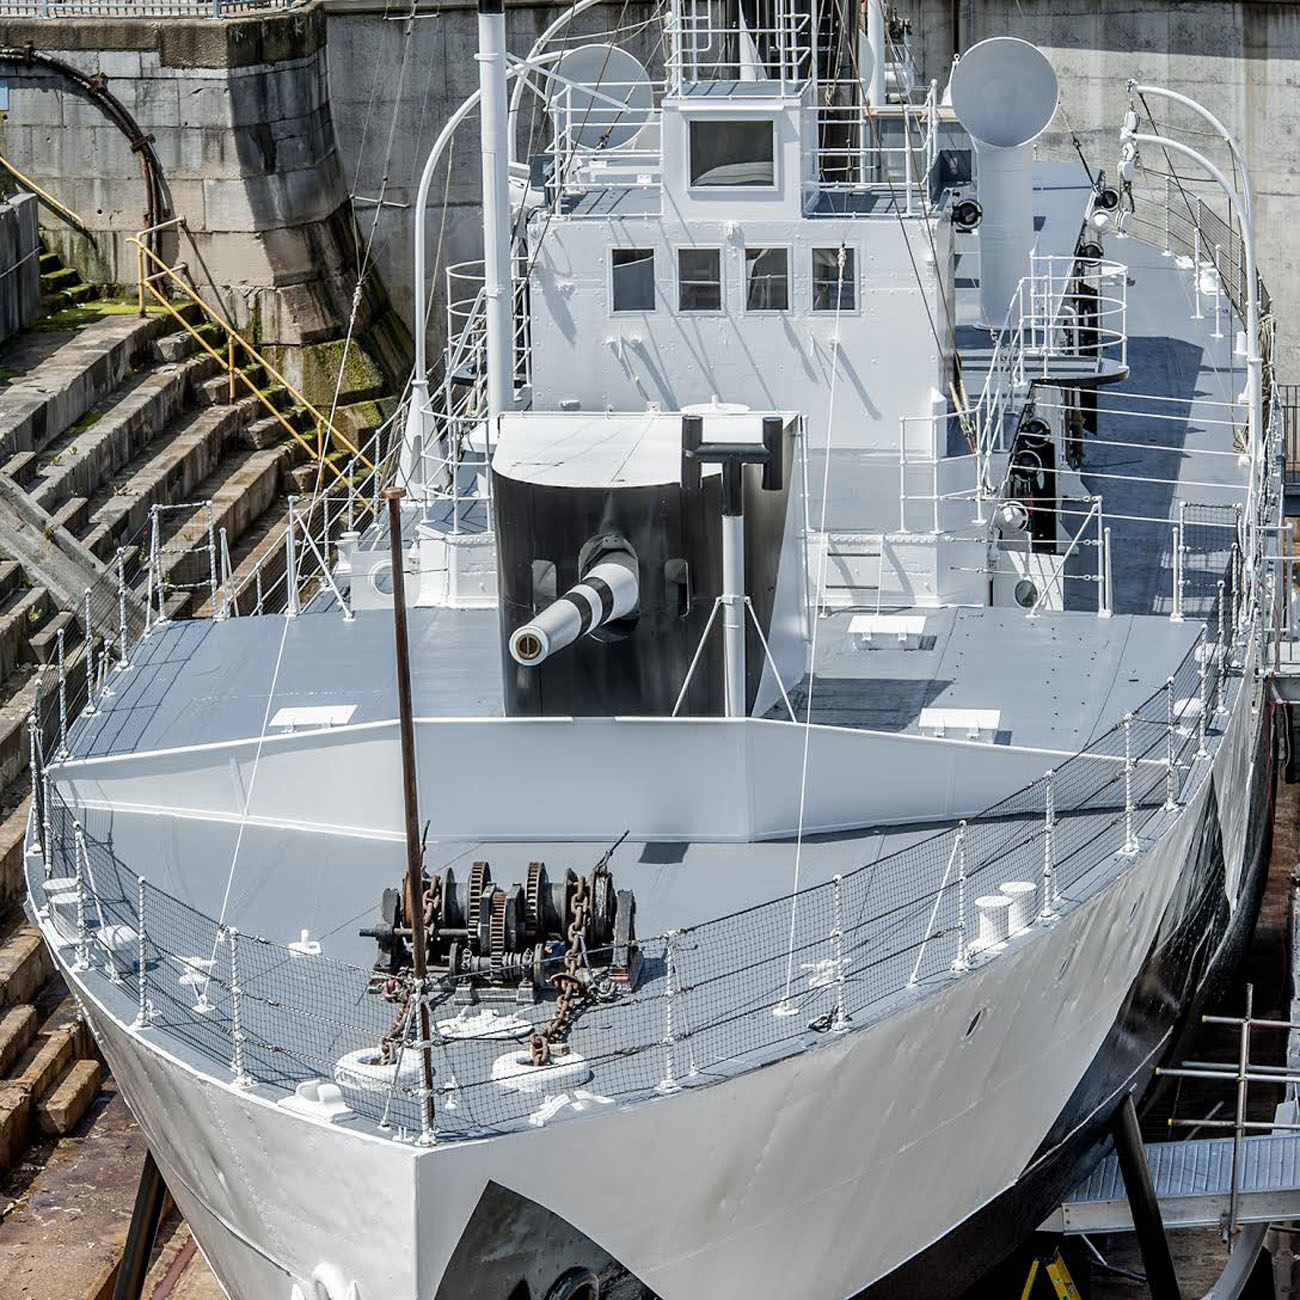 Gallipoli warship opens after £2.4m project